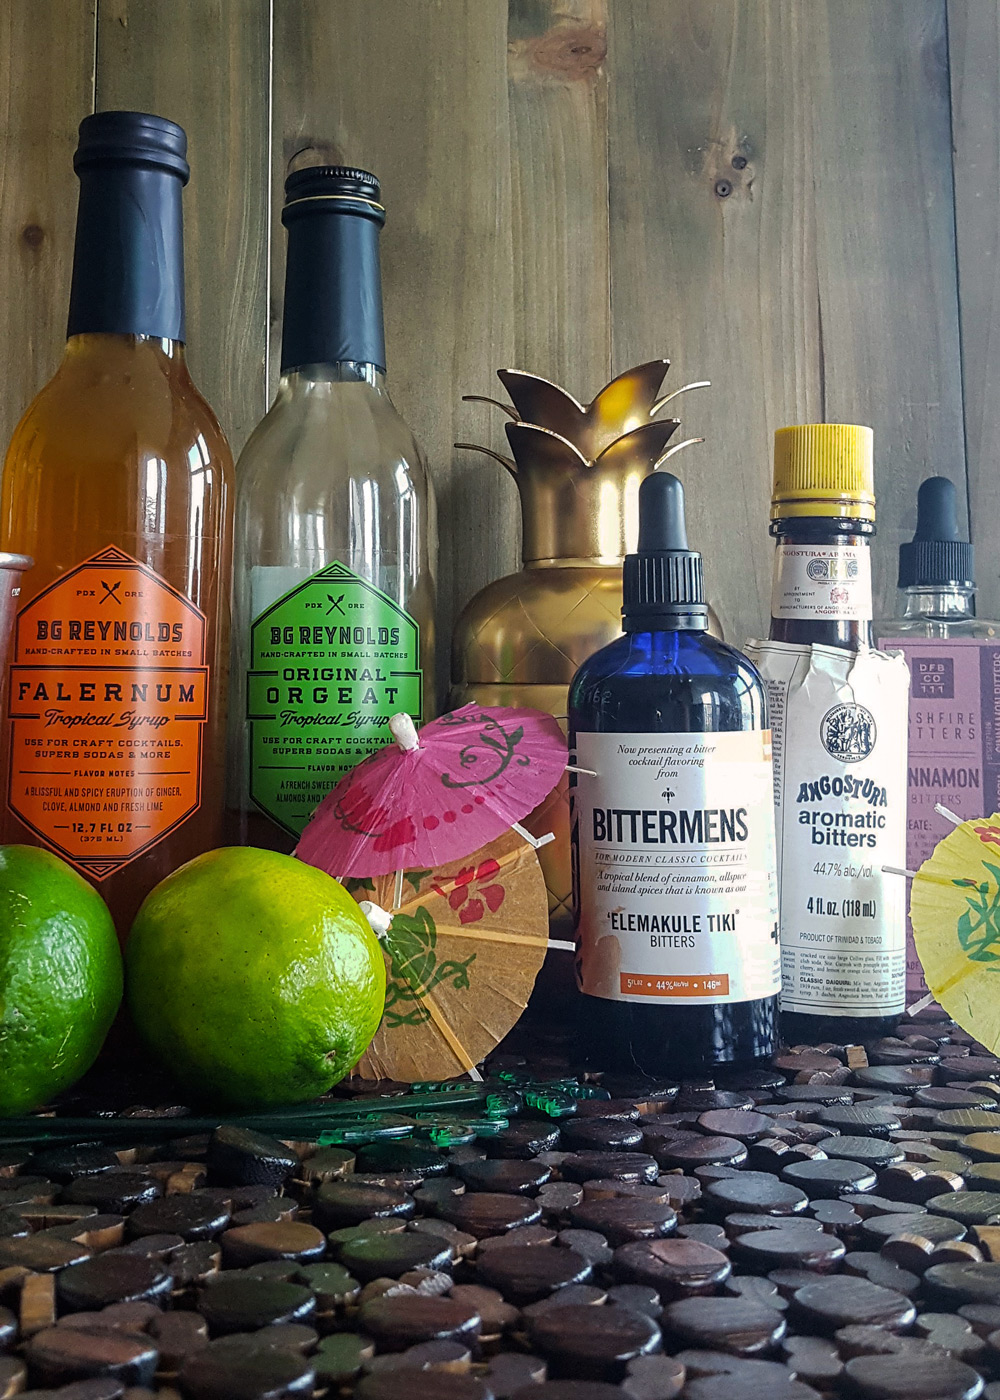 Syrups and bitters for your Home Tiki Bar. | FeastInThyme.com